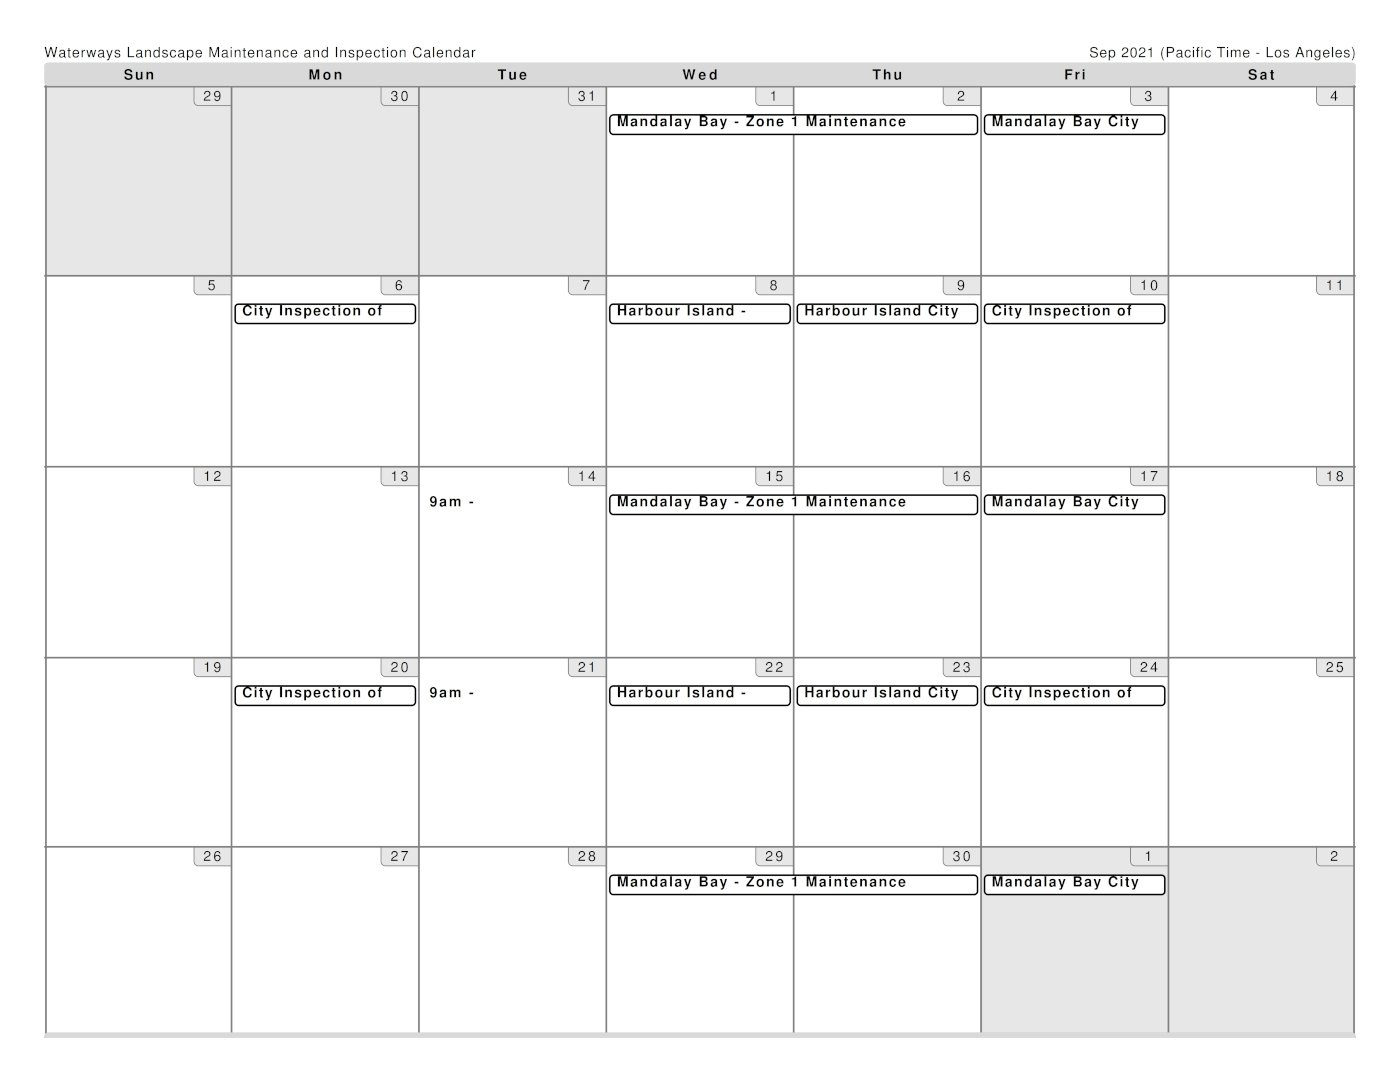 Brightview Schedule for September 2021